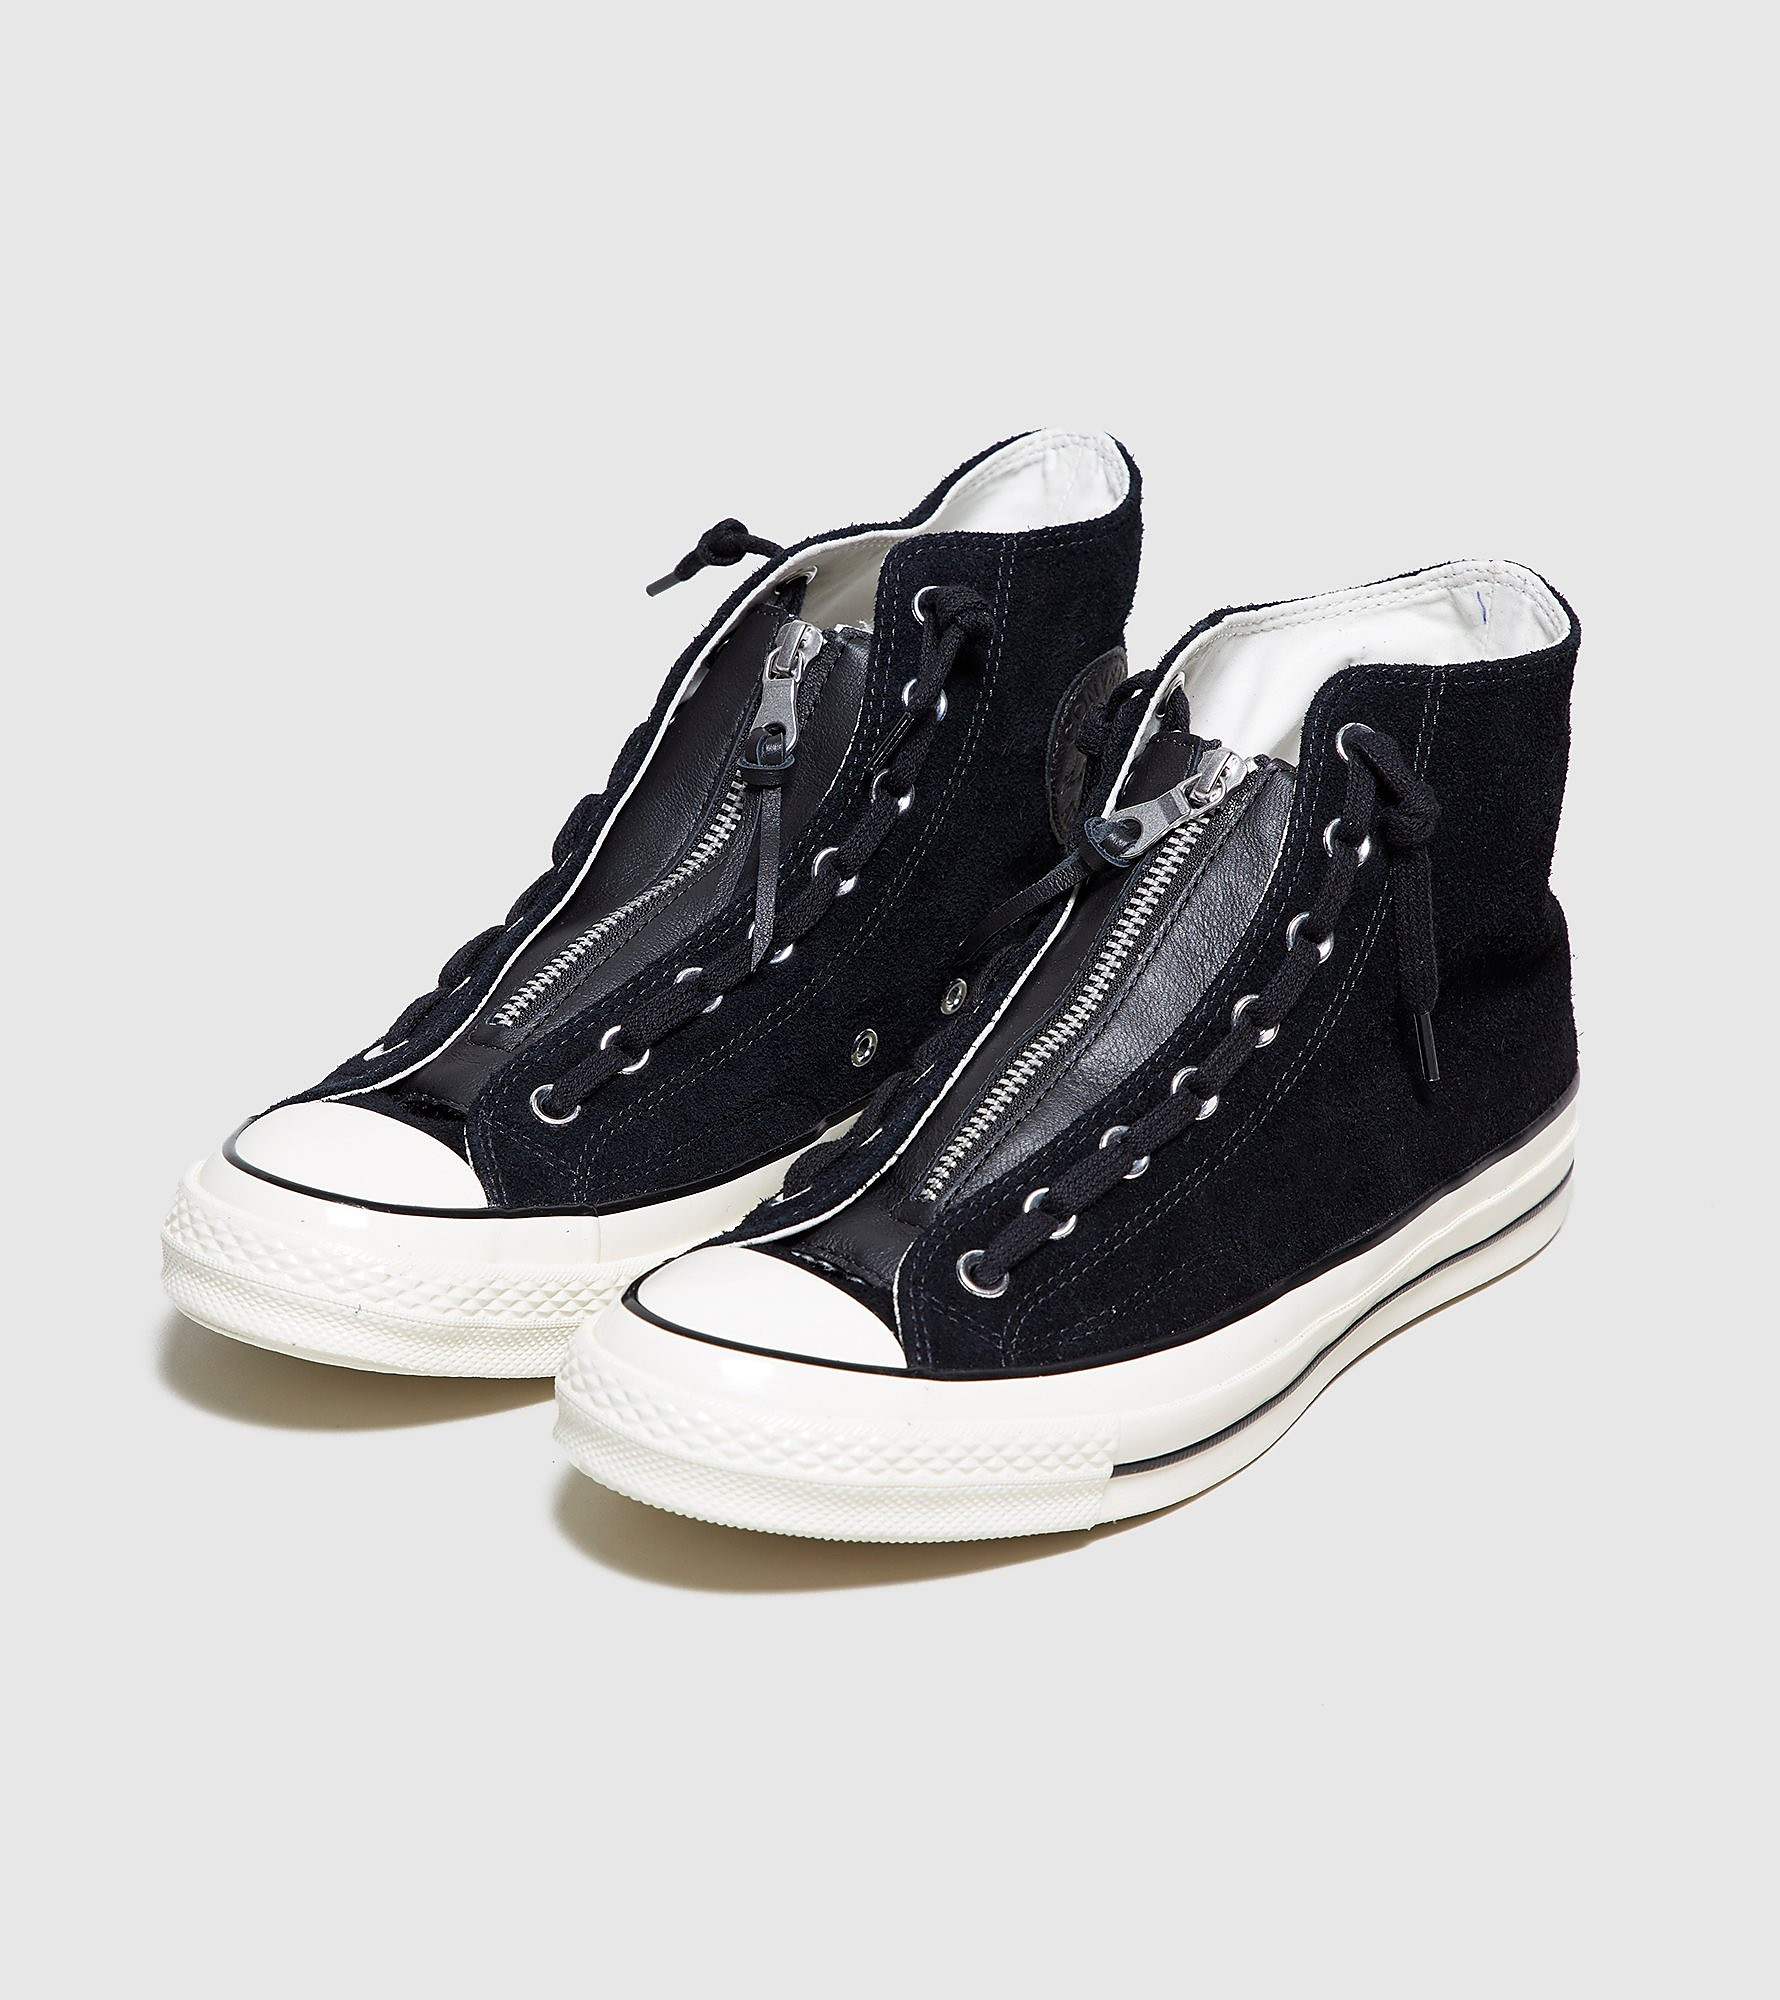 Converse Chuck Taylor All Star 70 Zip High